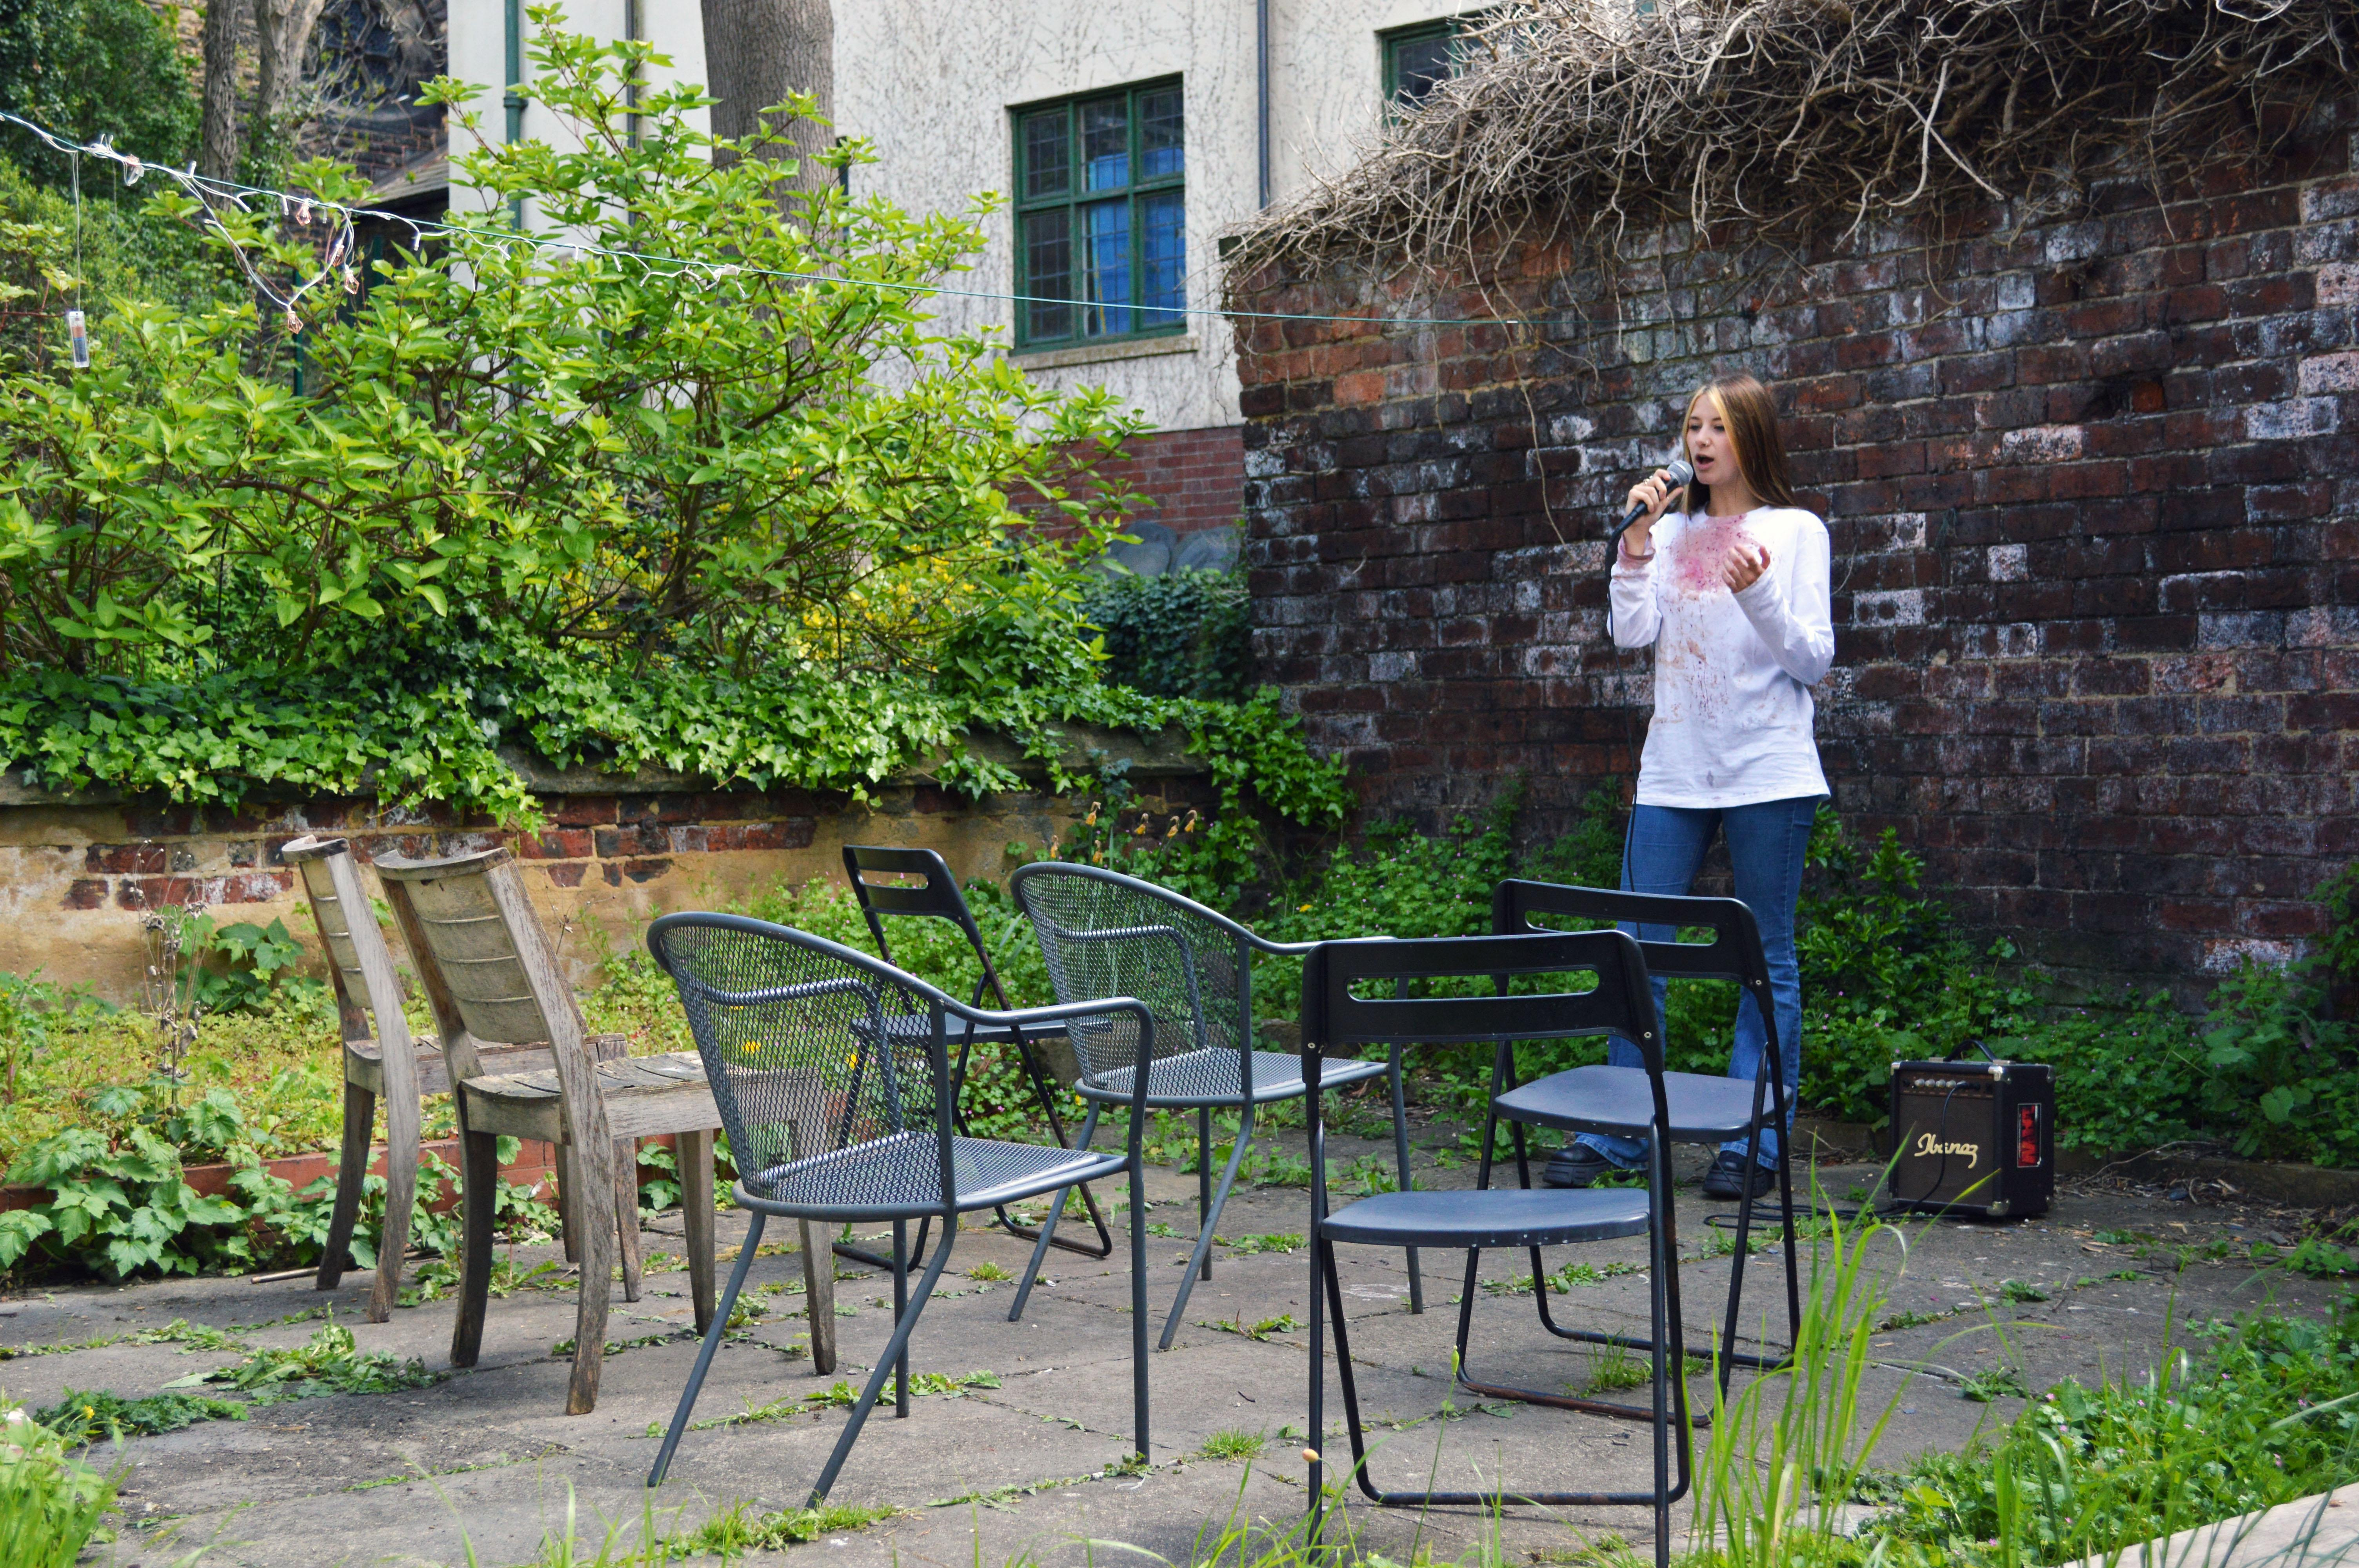 Artist  Olivia Russell performing to empty chairs in a garden during lockdown.